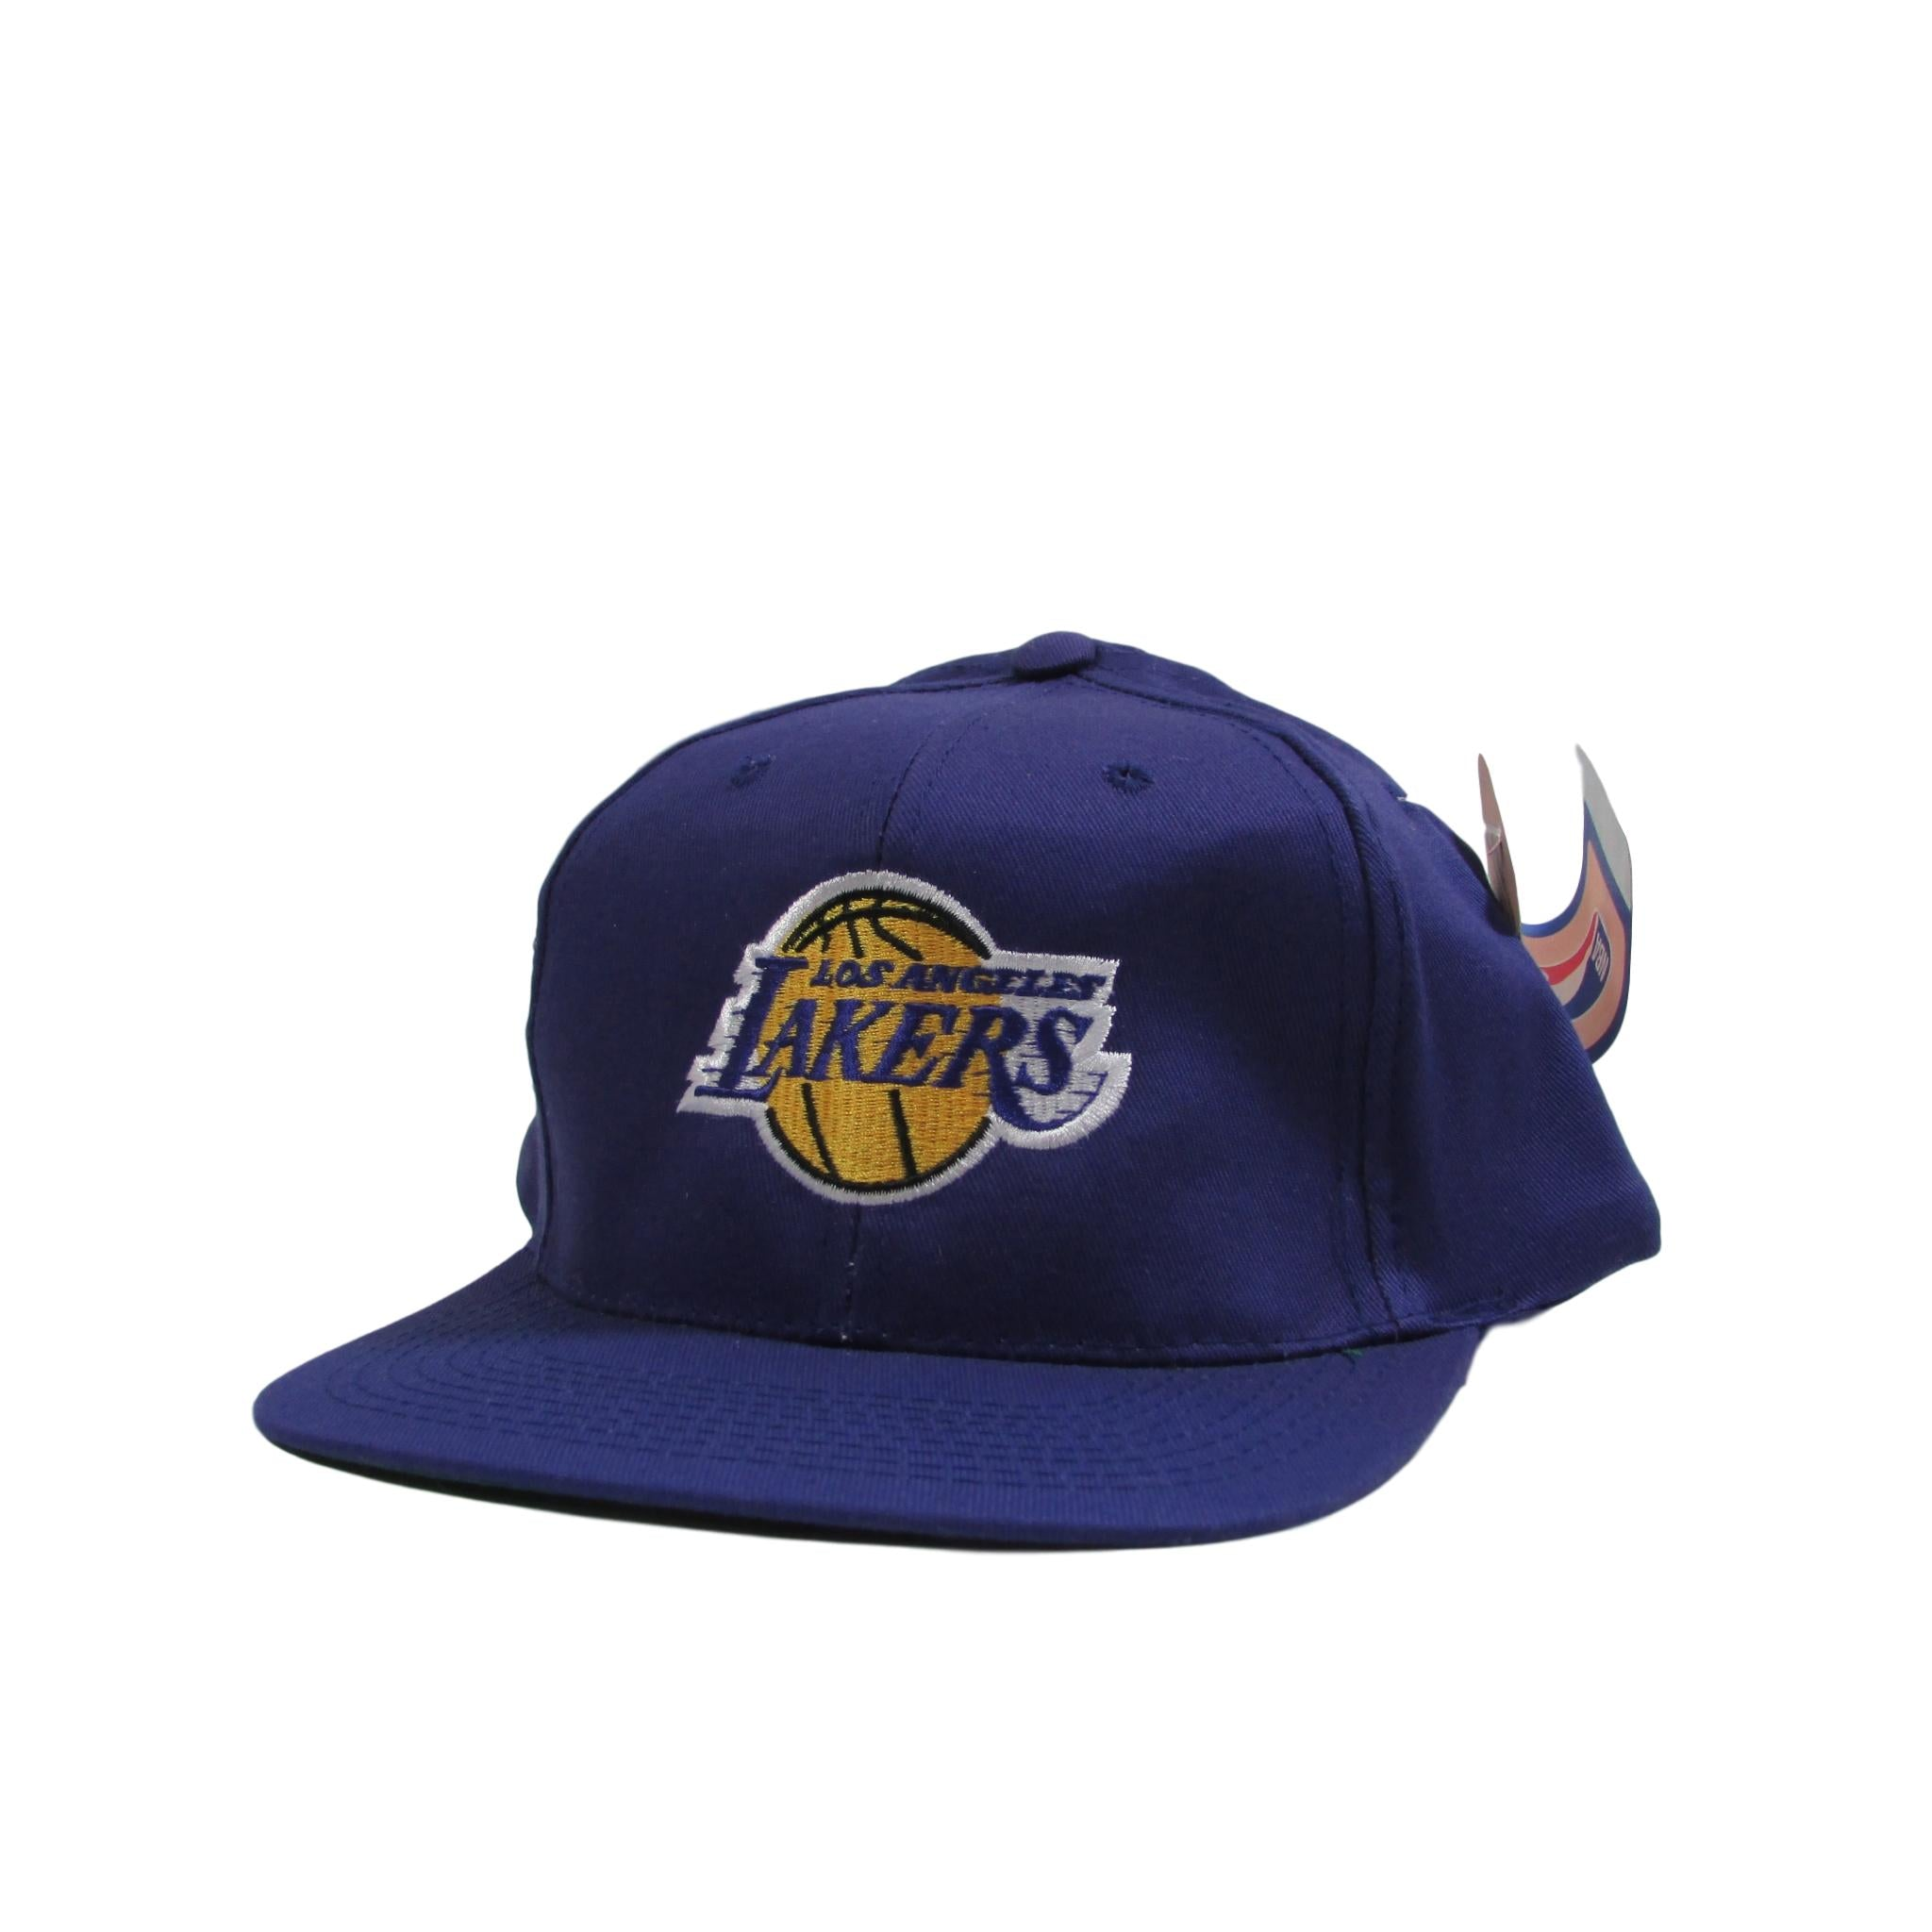 Los Angeles Lakers Classic Logo Vintage Basketball Snapback Hat Adidas